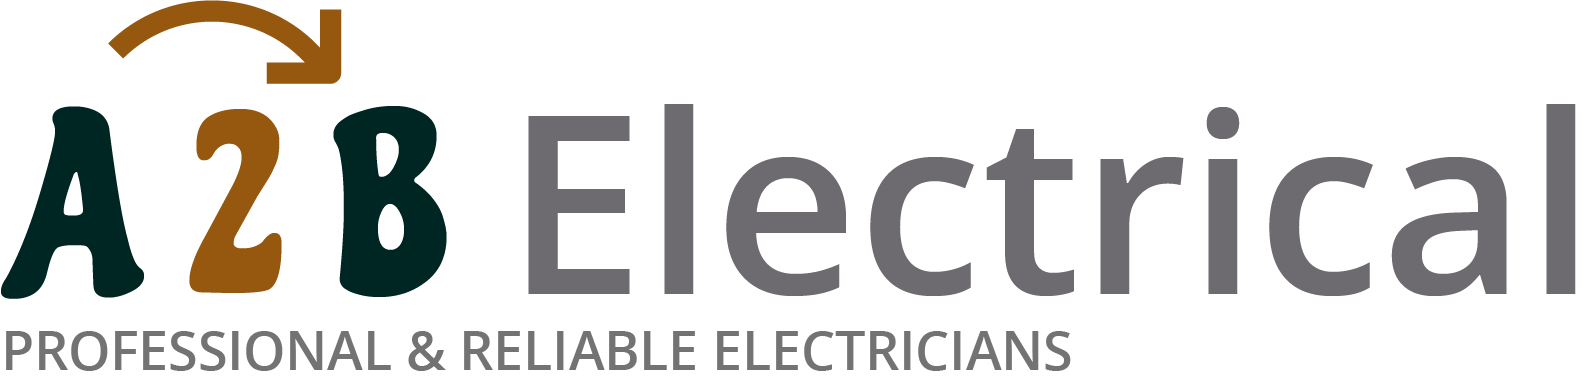 If you have electrical wiring problems in Stamford Hill, we can provide an electrician to have a look for you.